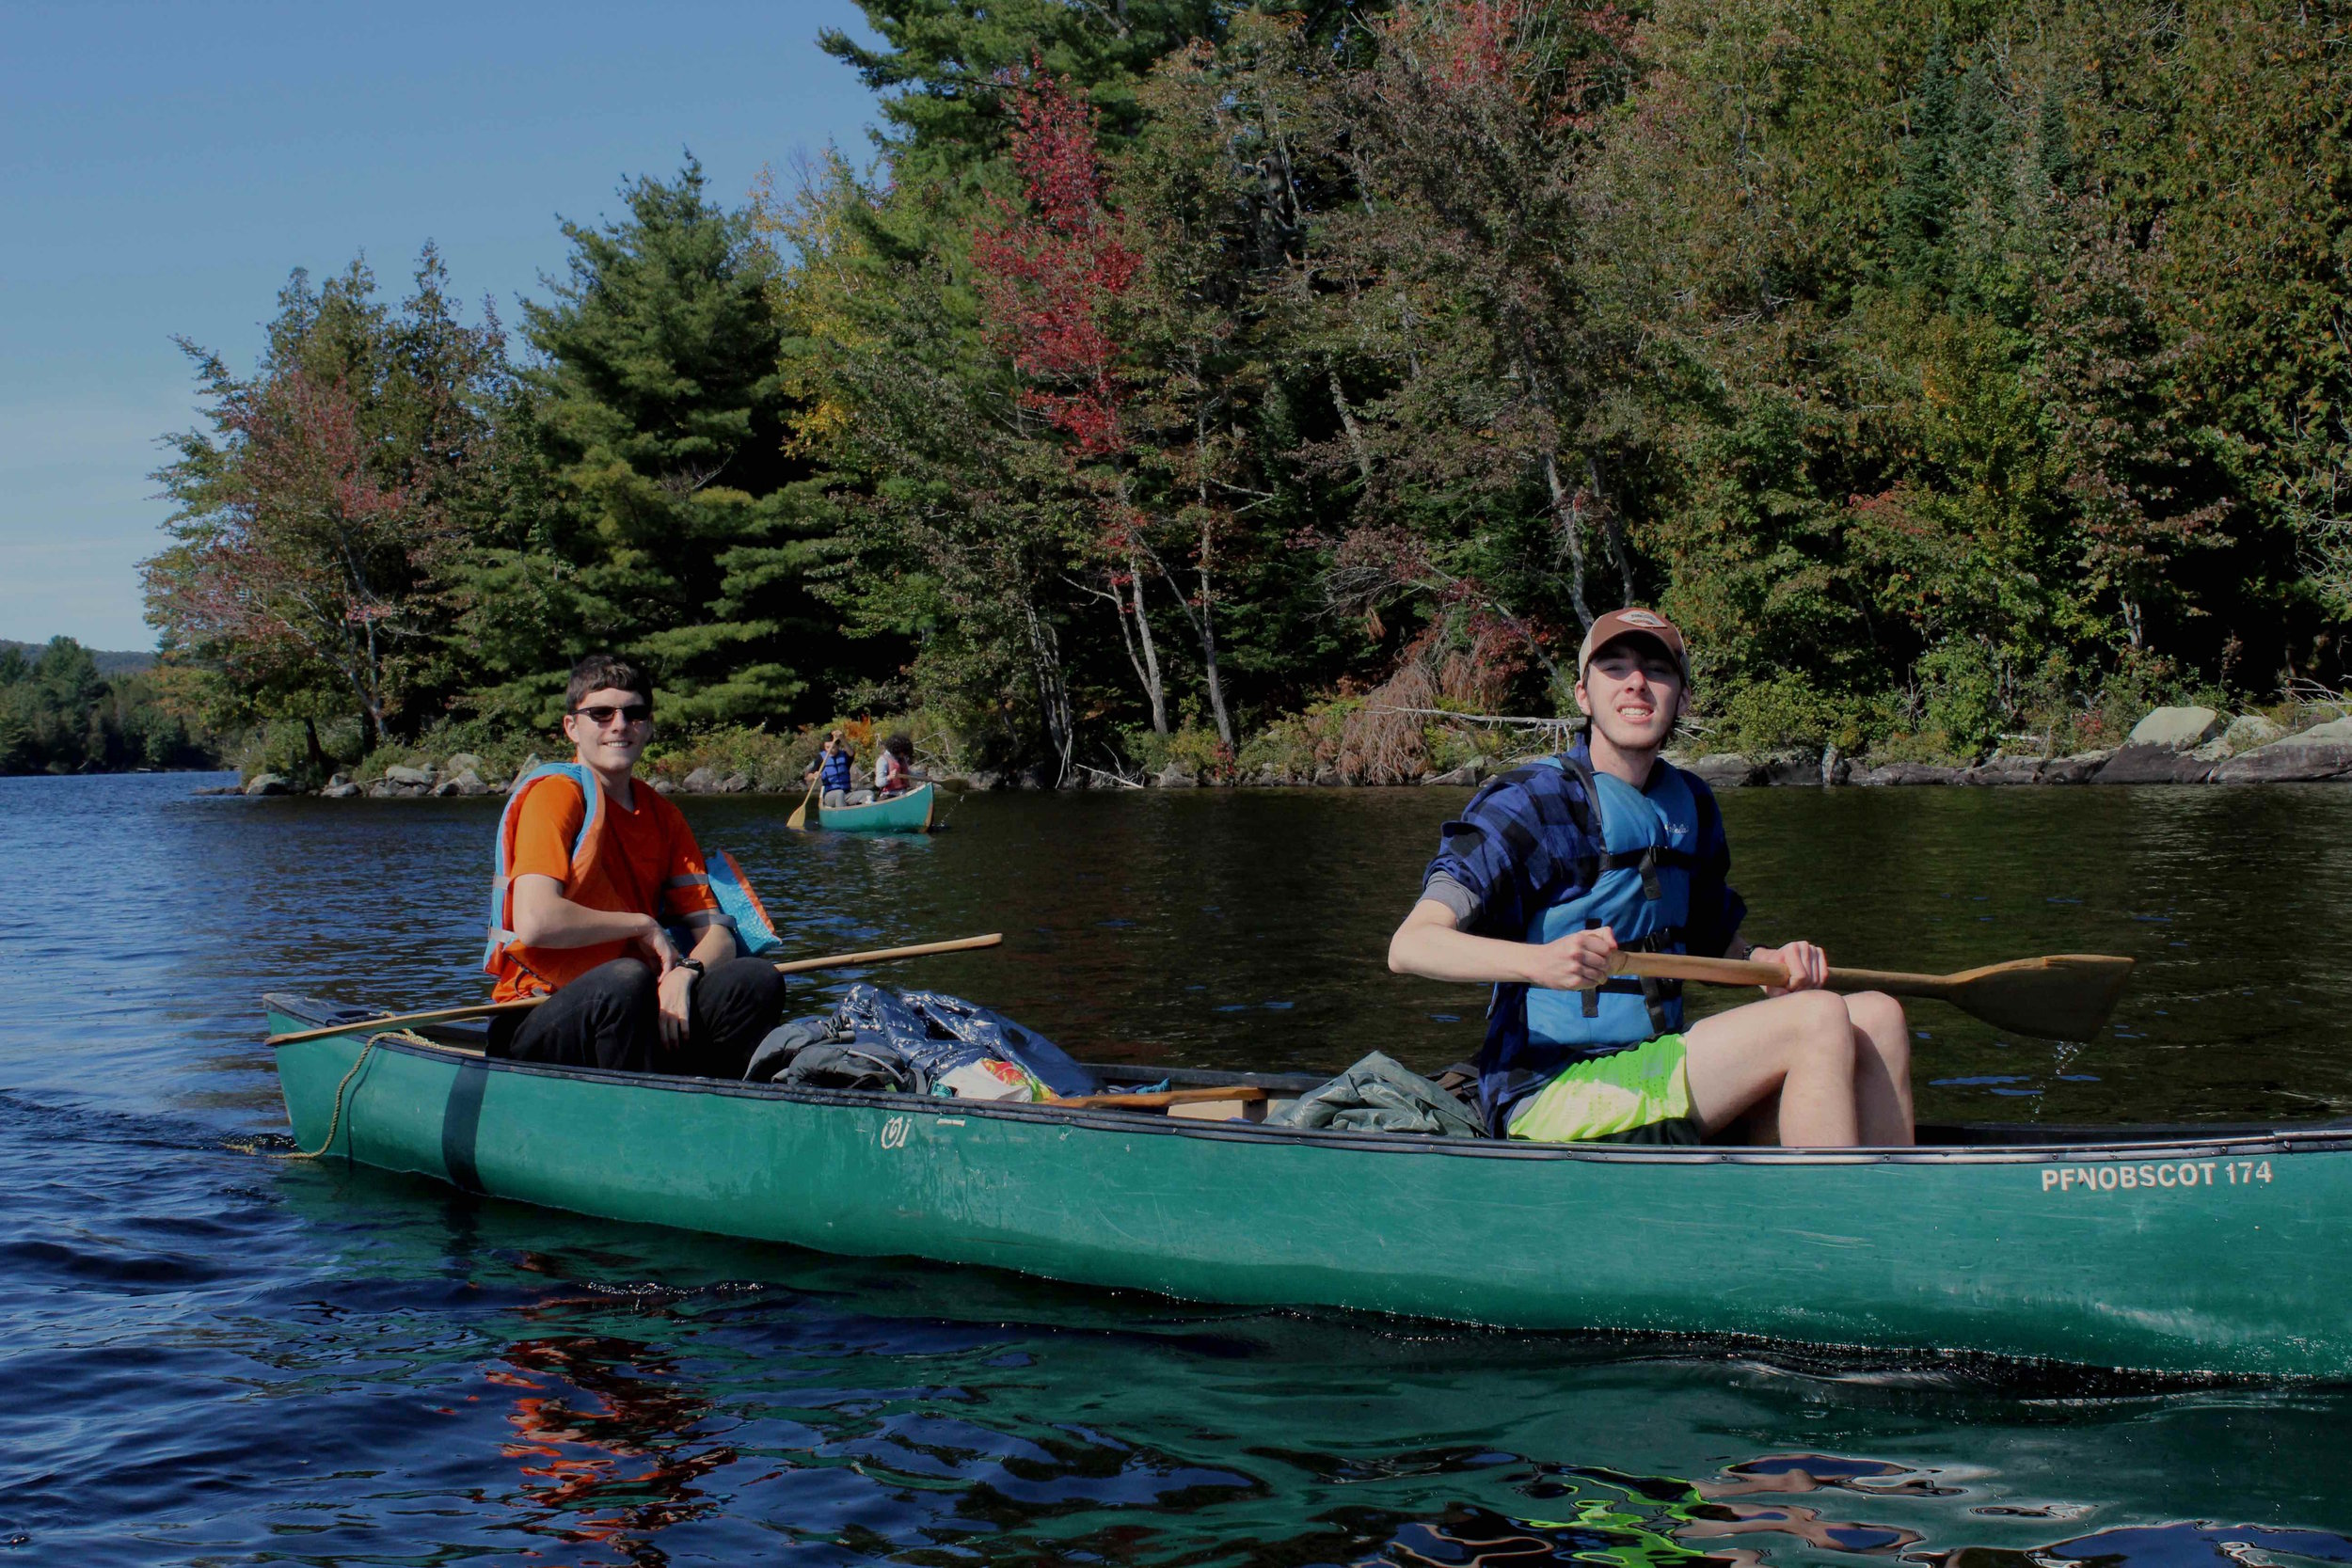 Dan and his canoe partner, John, back on the water after a big portage.